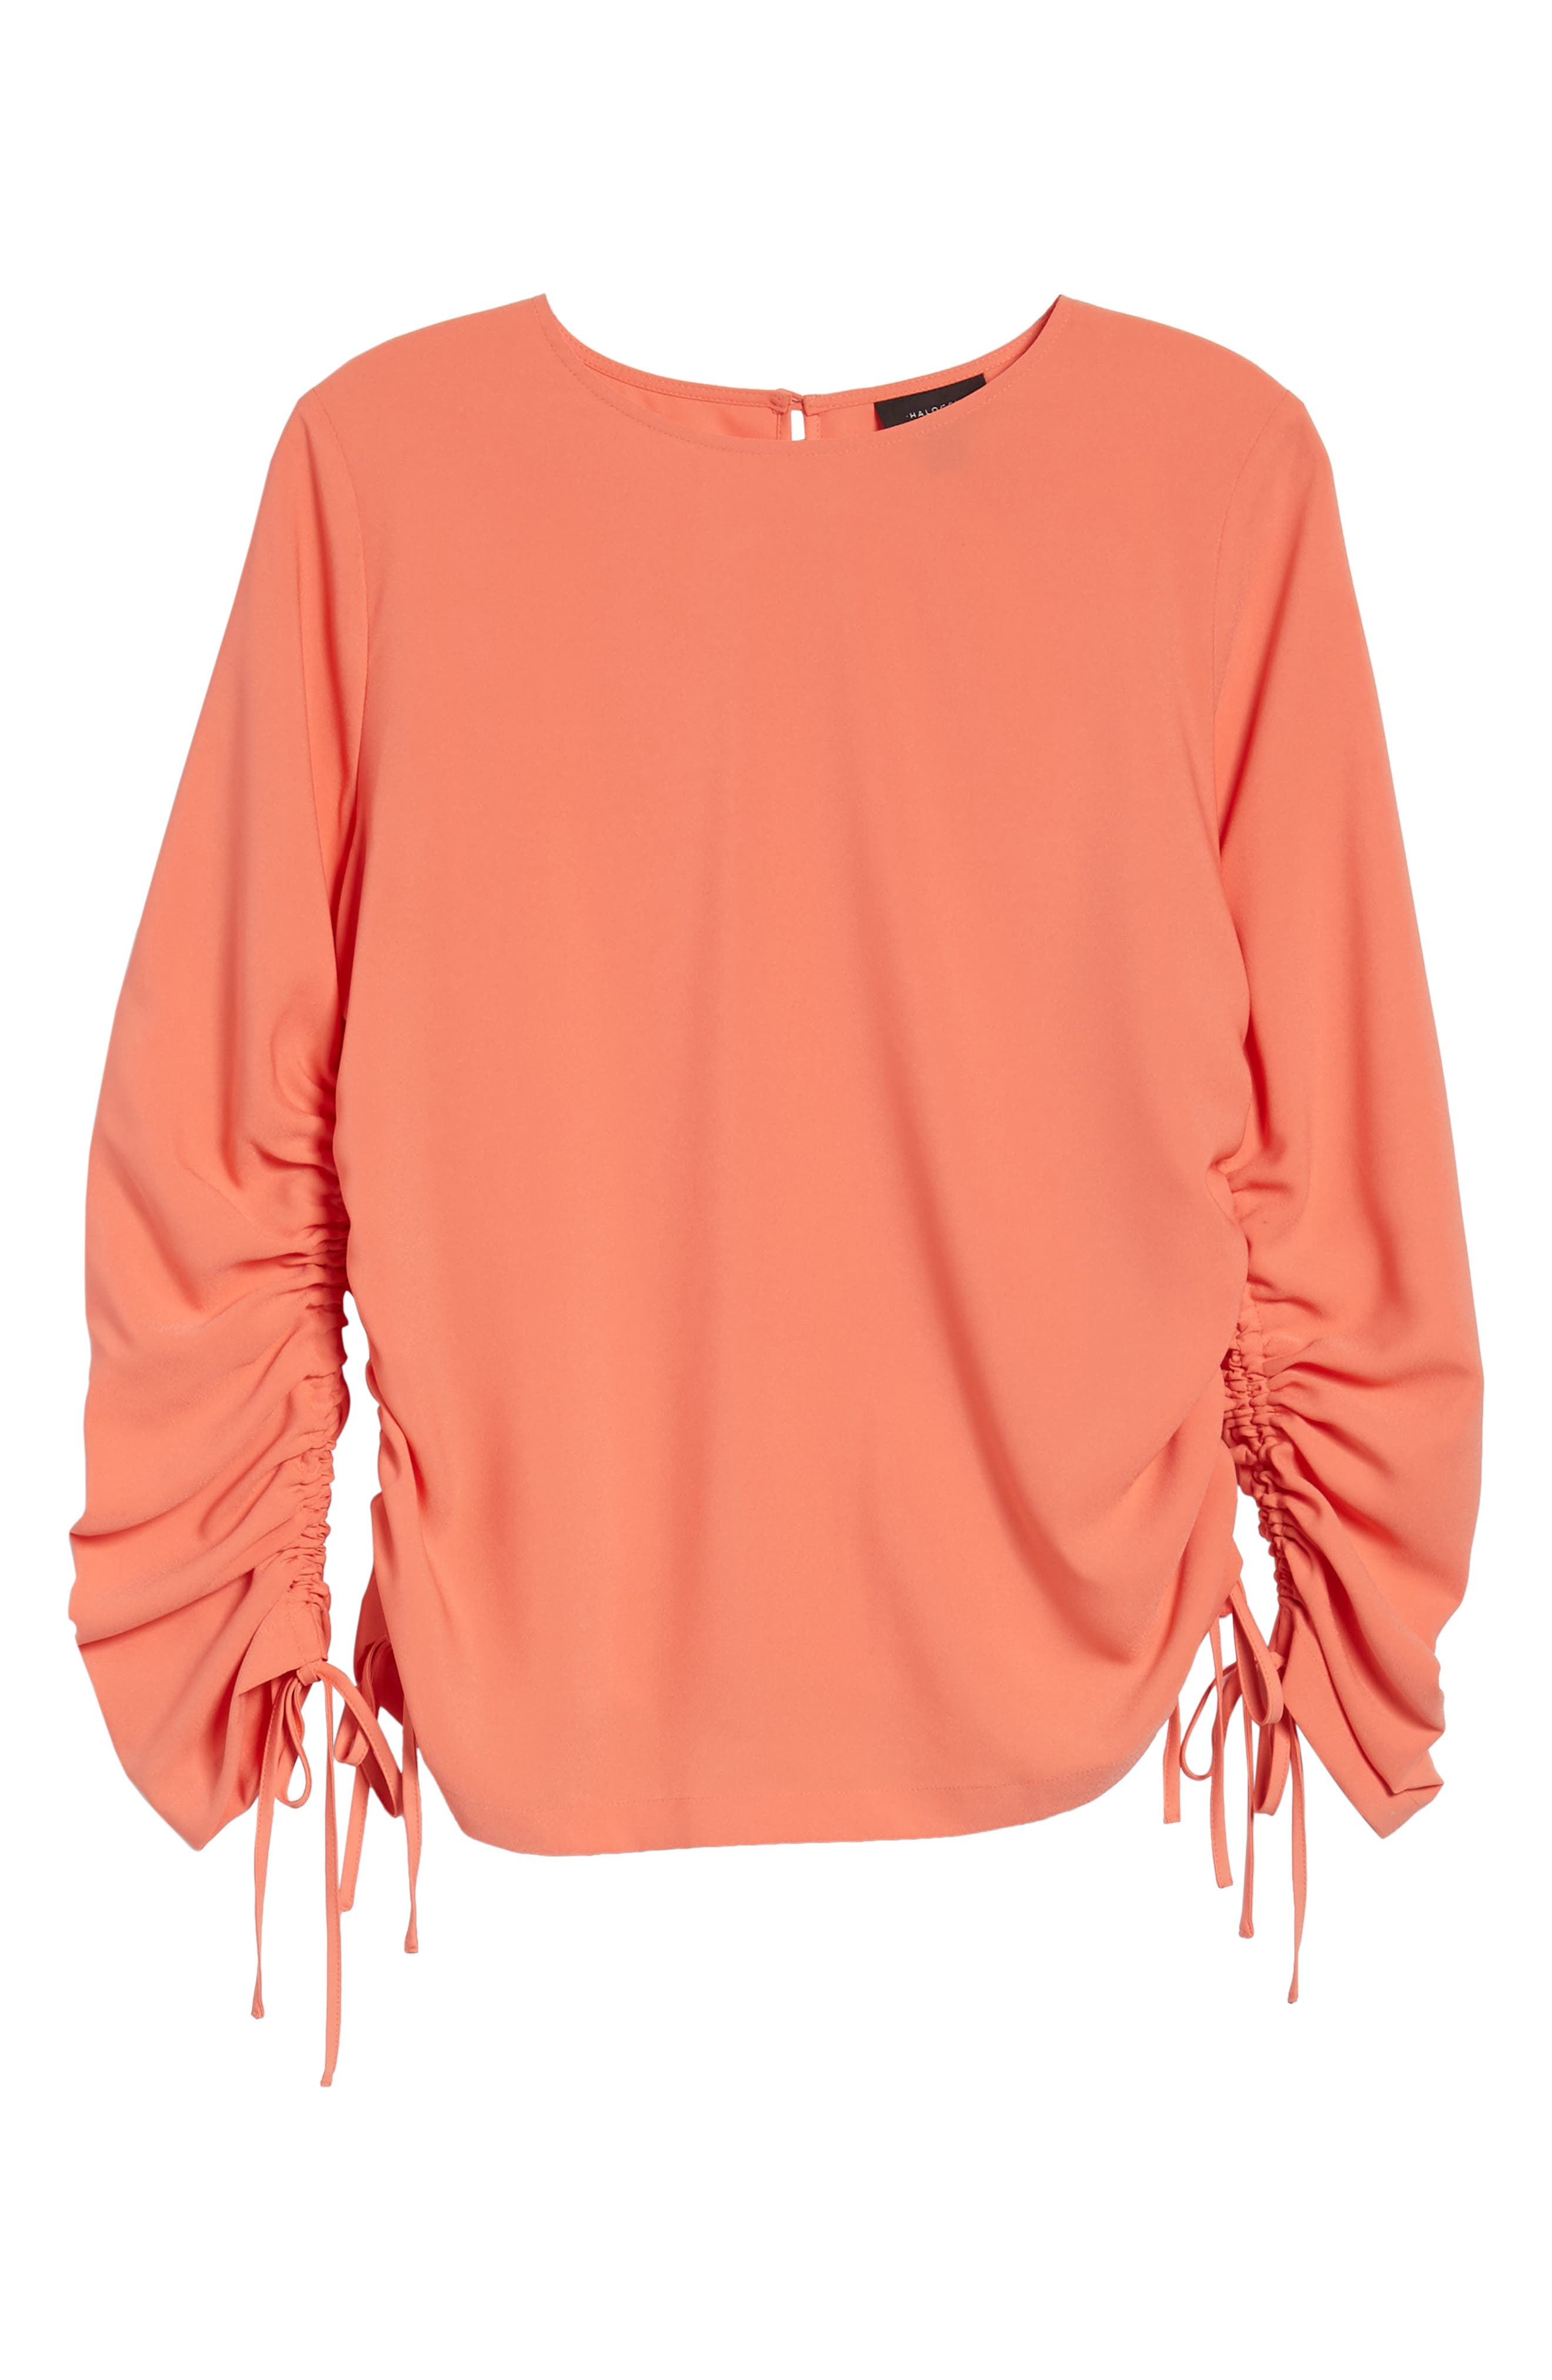 Cinched Sleeve Blouse,                             Alternate thumbnail 7, color,                             Coral Ocean